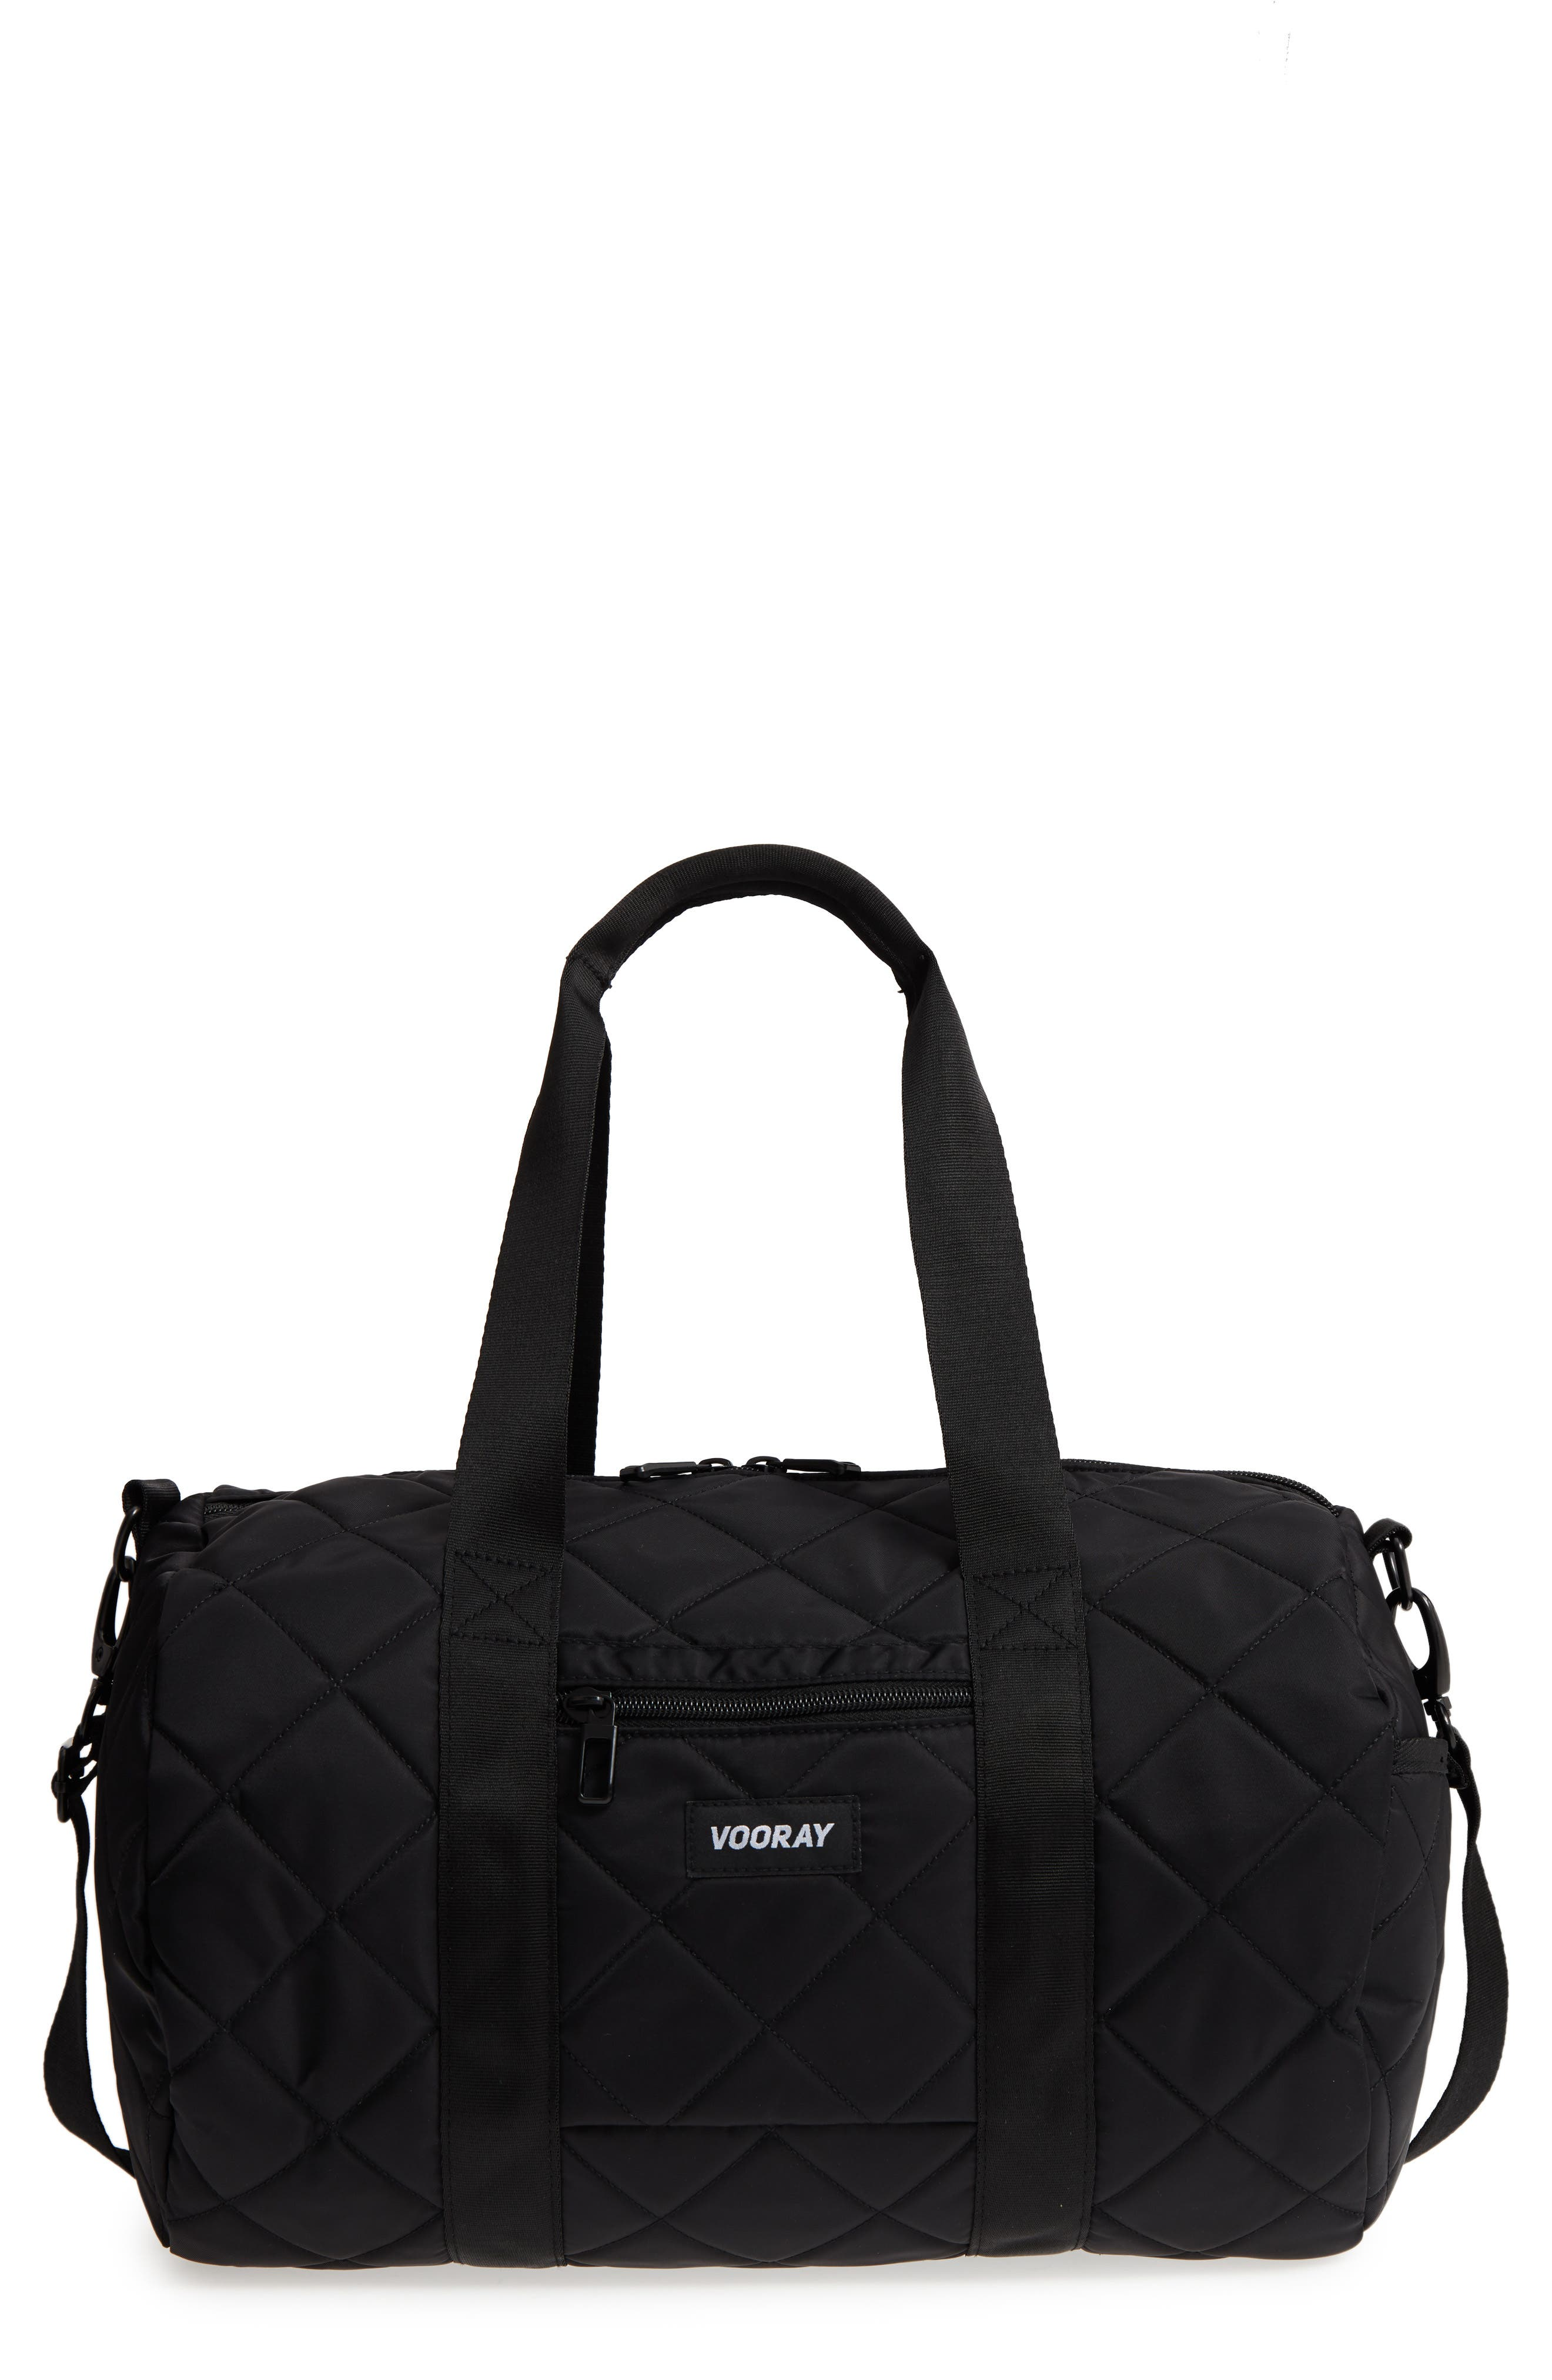 Roadie Small Duffel Bag,                             Main thumbnail 1, color,                             Quilted Black Nylon